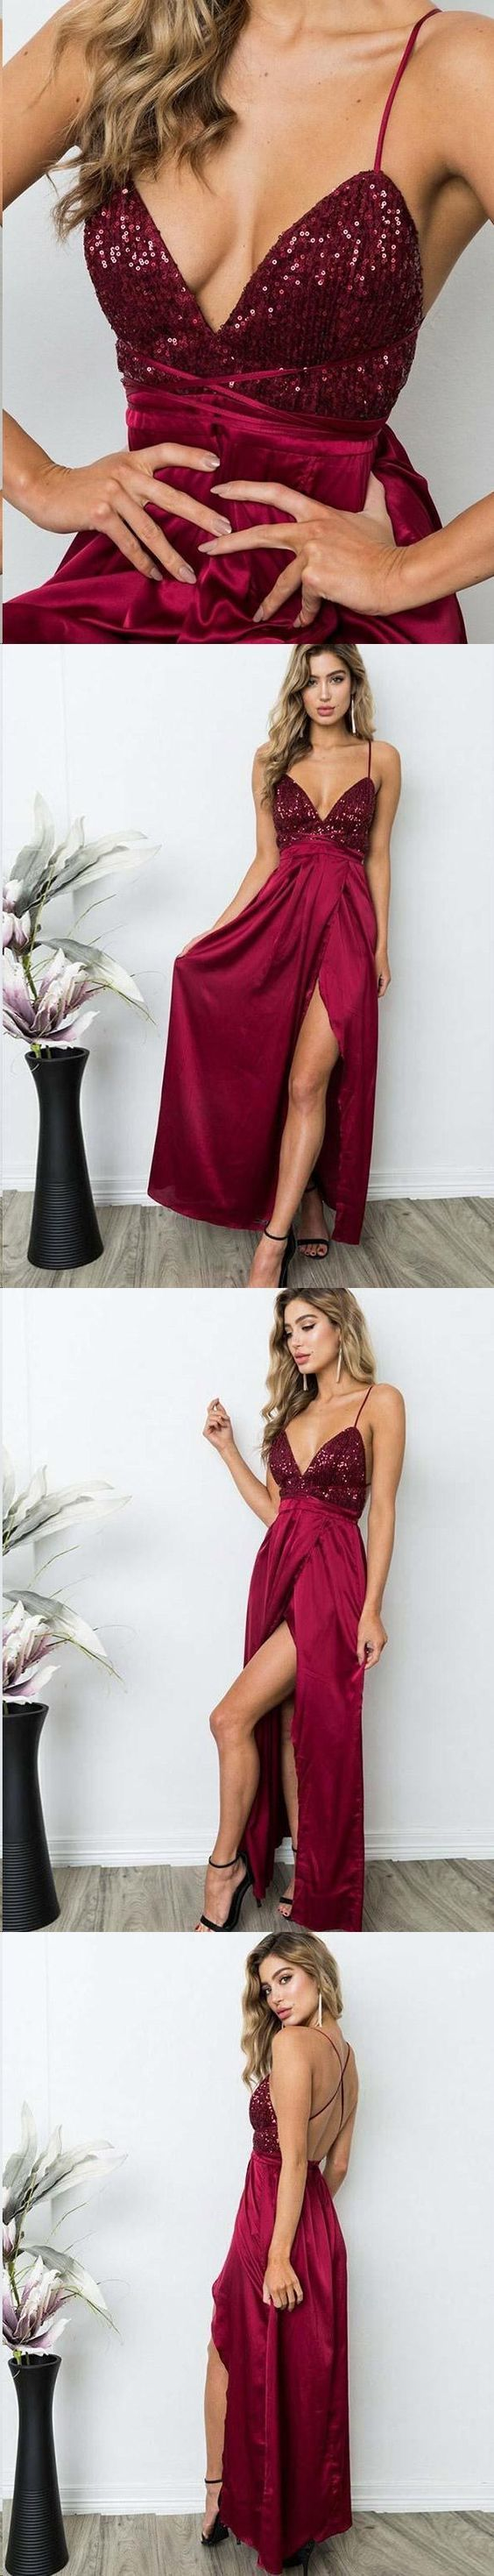 Open Back Prom Dresses with Slit A-line Spaghetti Straps Chic Long Burgundy Prom